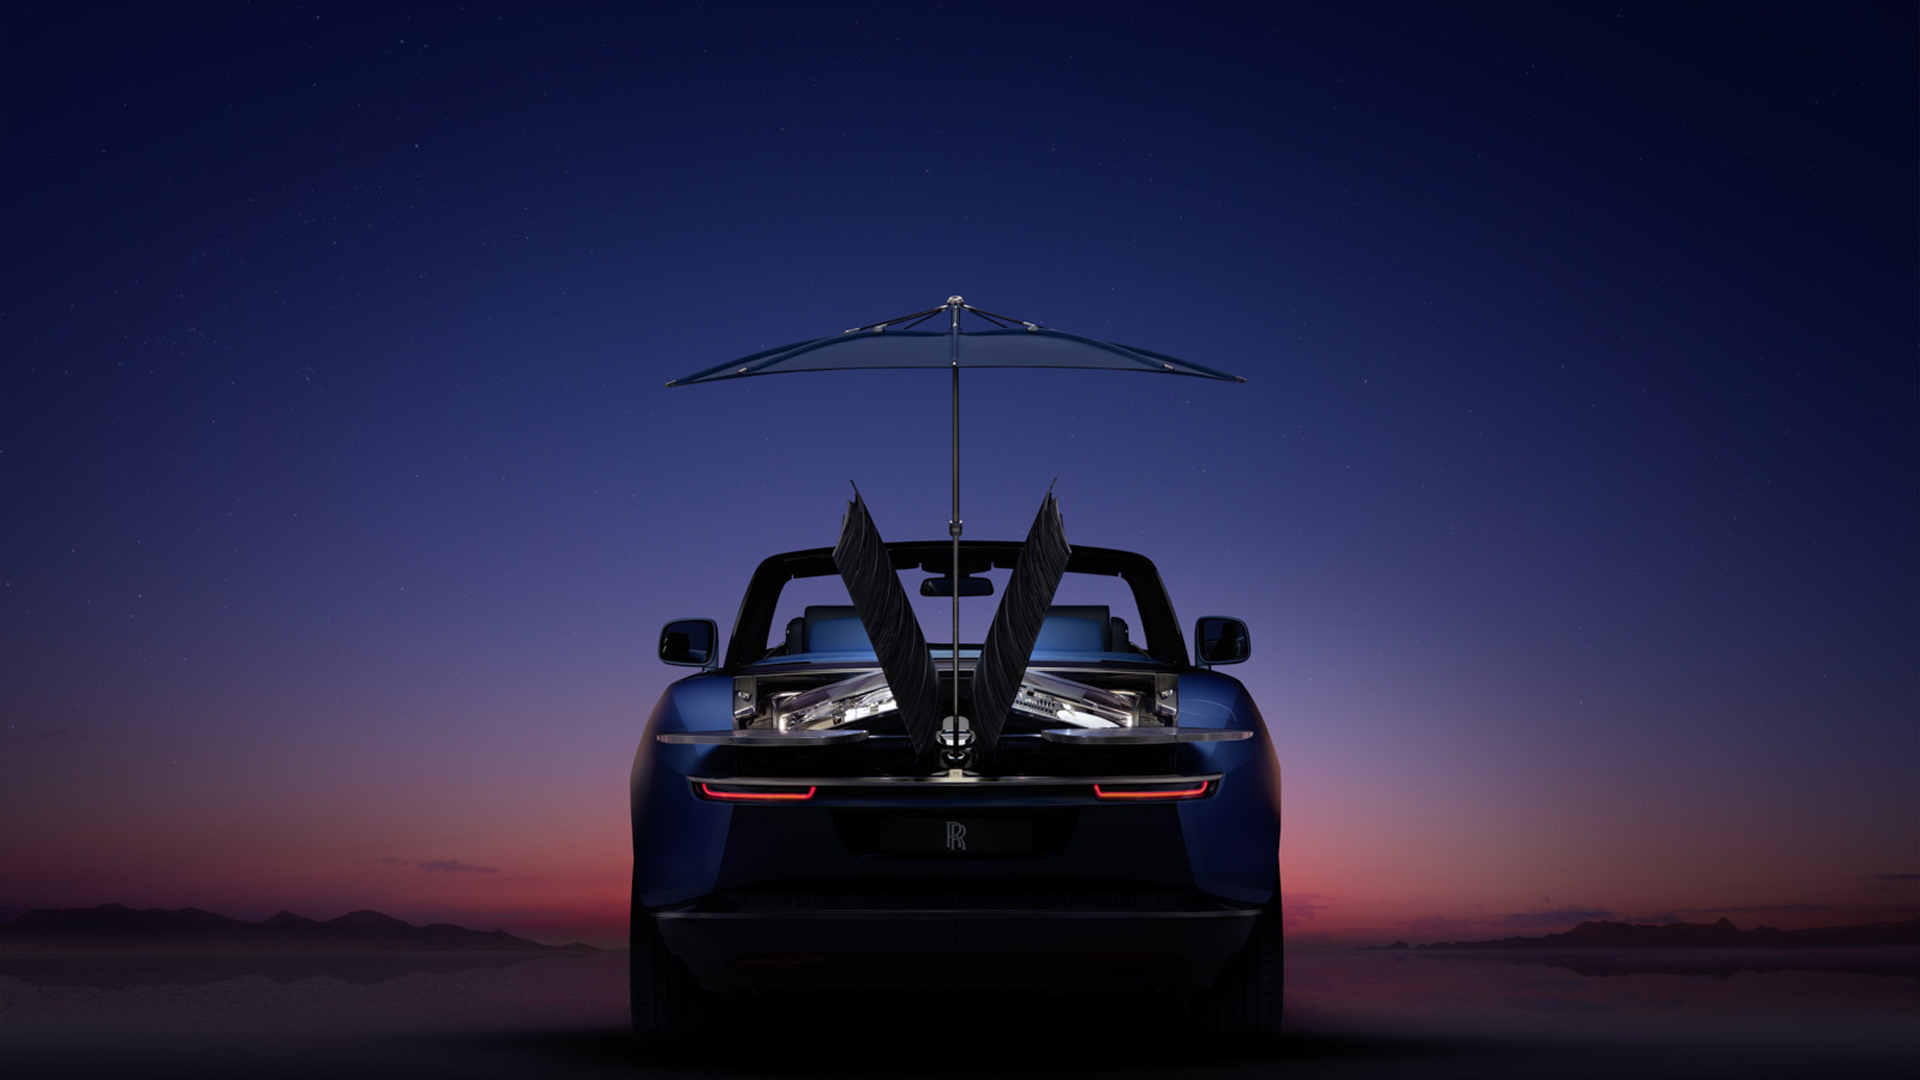 marine blue luxury car Rolls Royce Boat Tail back view on background sunset